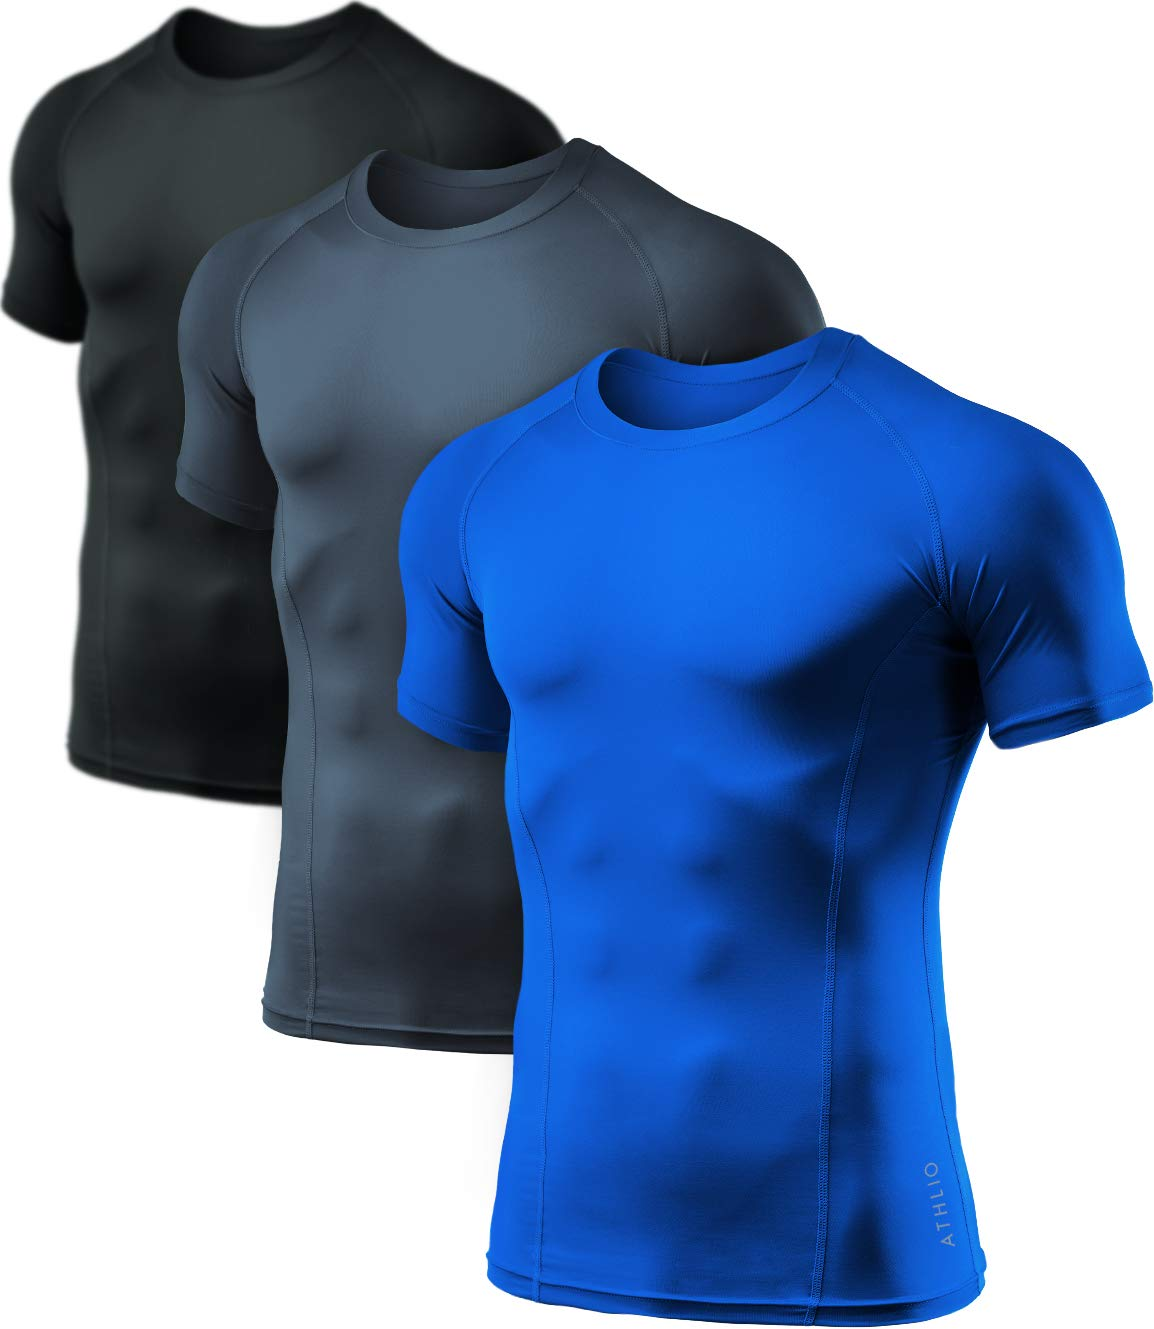 ATHLIO Men's (Pack of 3) Cool Dry Compression Short Sleeve Sports Baselayer T-Shirts Tops, 3pack(bts02) - Black/Charcoal/Blue, 2X-Large